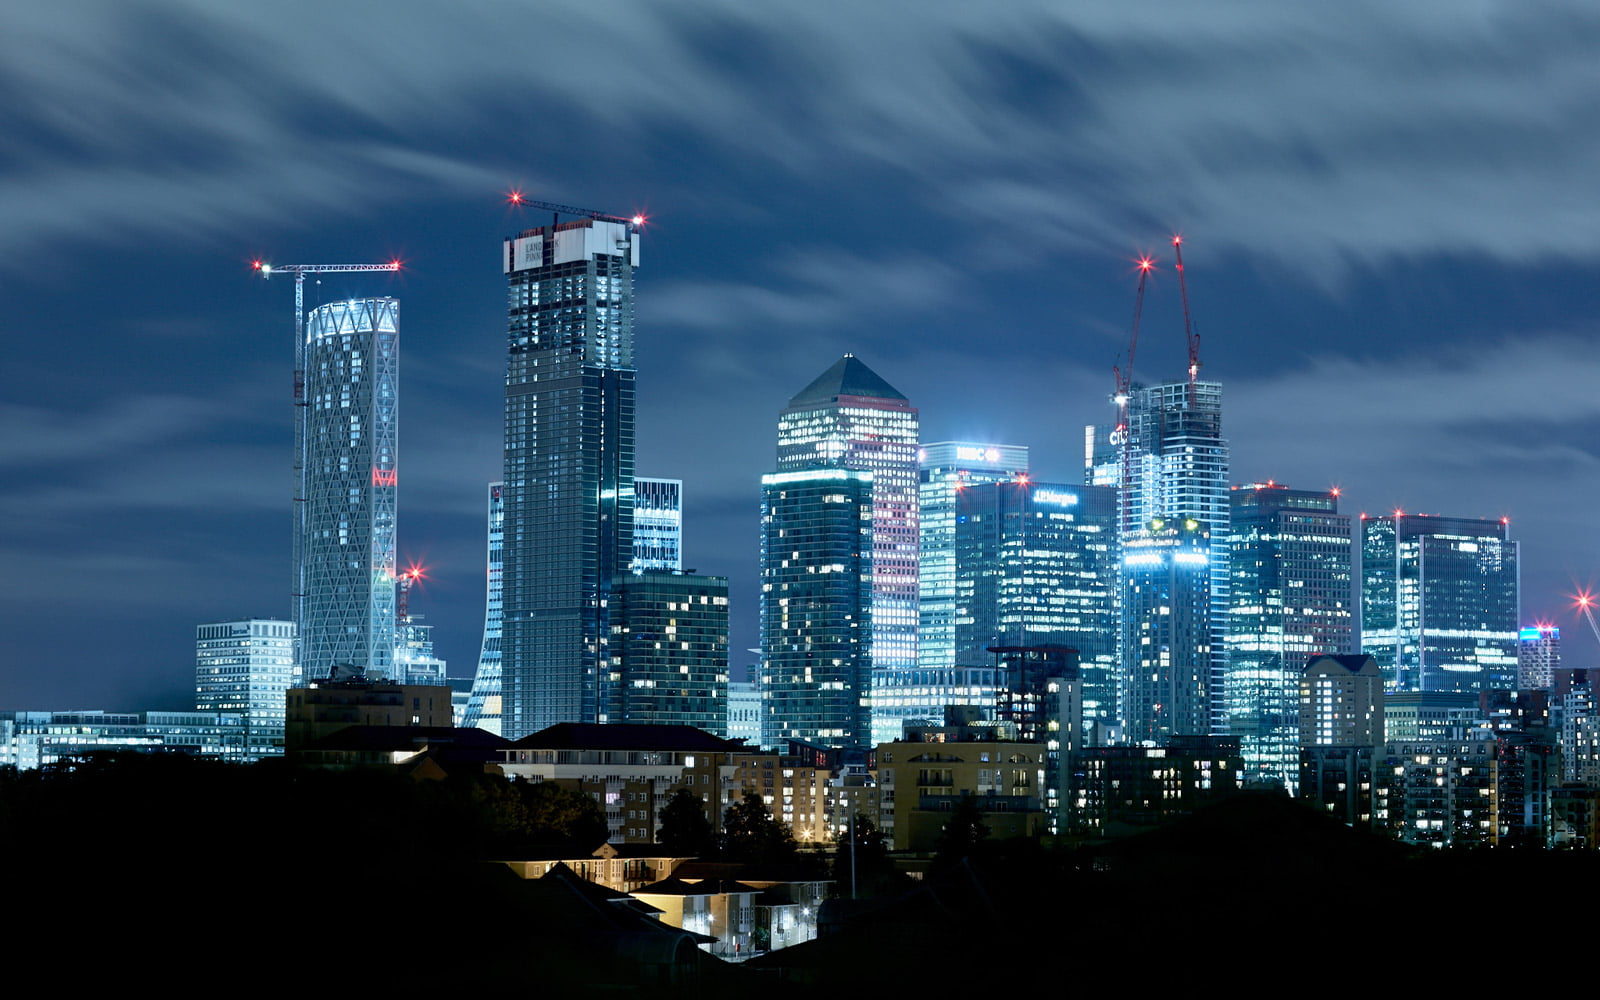 A stunning cityscape image of London's financial district at night. Photographed by Faceiro//Chris Underwood Photography